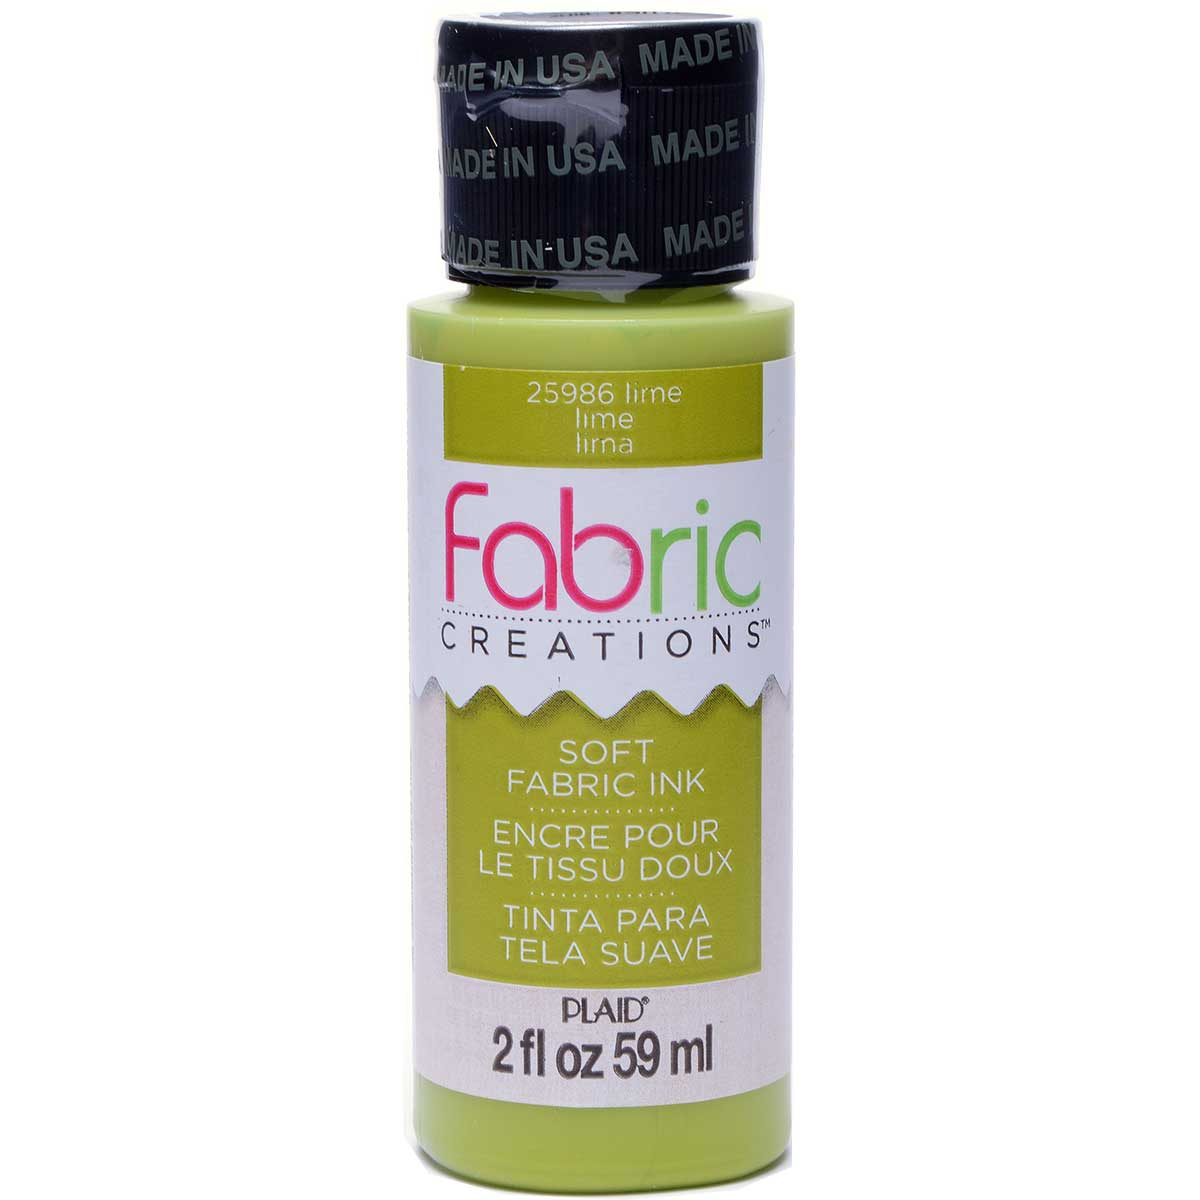 Fabric Creations™ Soft Fabric Inks - Lime, 2 oz. - 25986